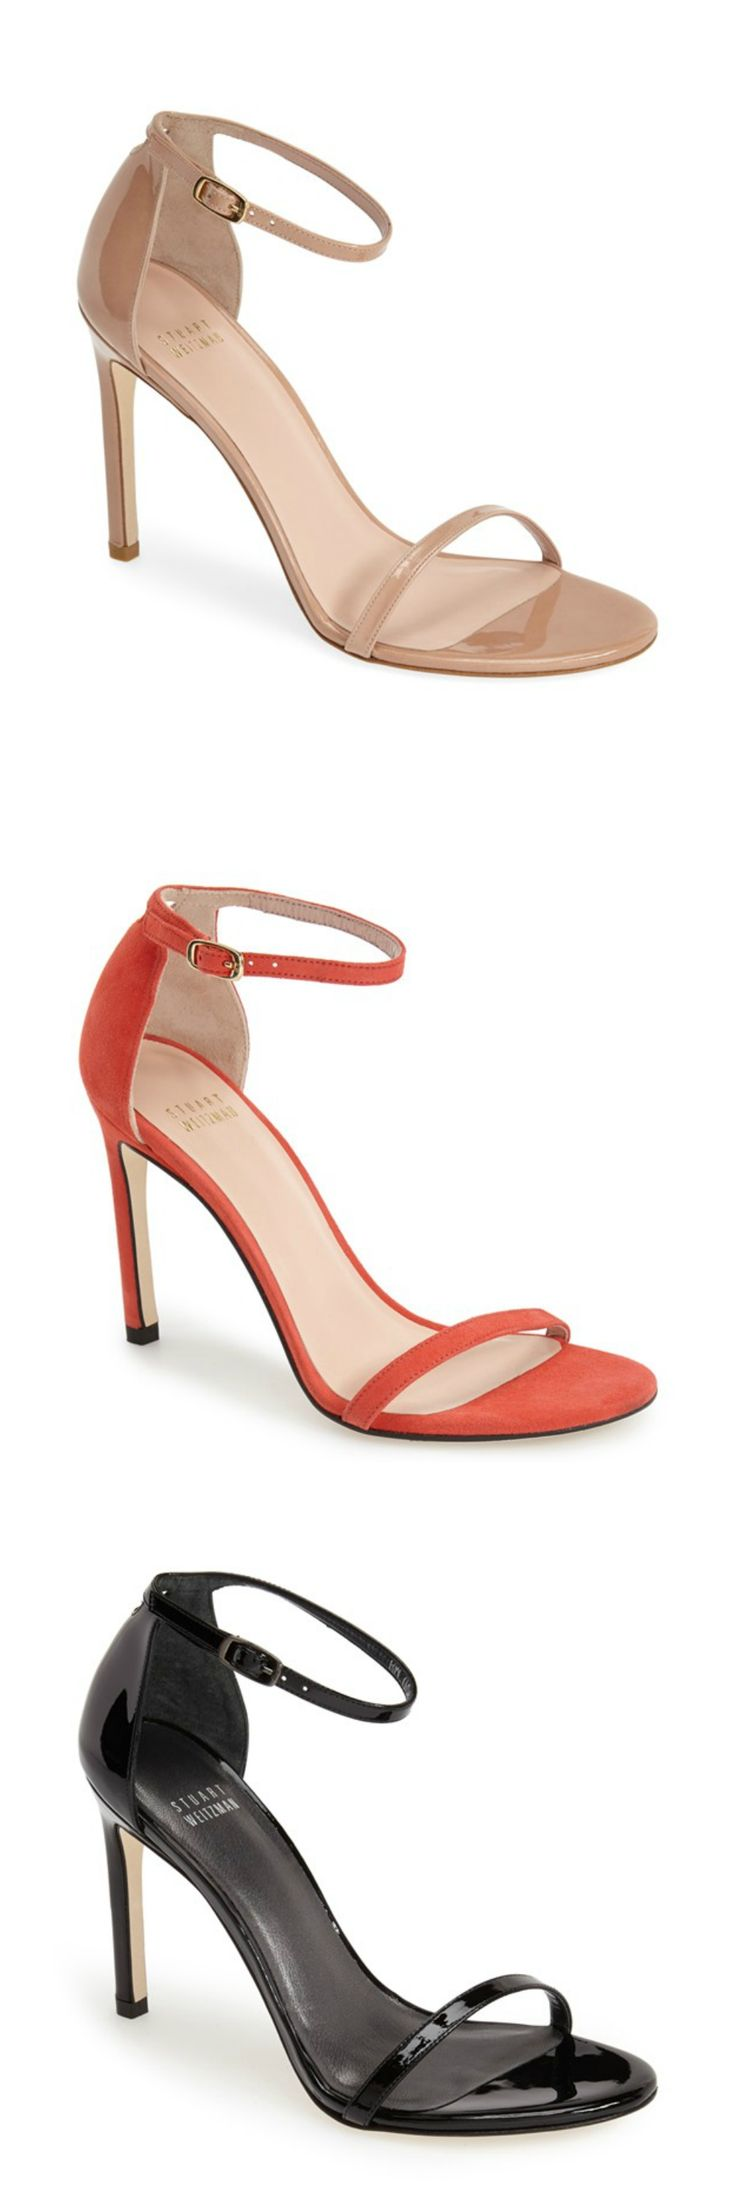 This Stuart Weitzman sandal goes with everything! It's the perfect heel height, is flattering on everyone and is a favorite shoe among editors, stylists and celebrities. Gorgeous, comfortable and affordable, too! Comes in 8 colors.